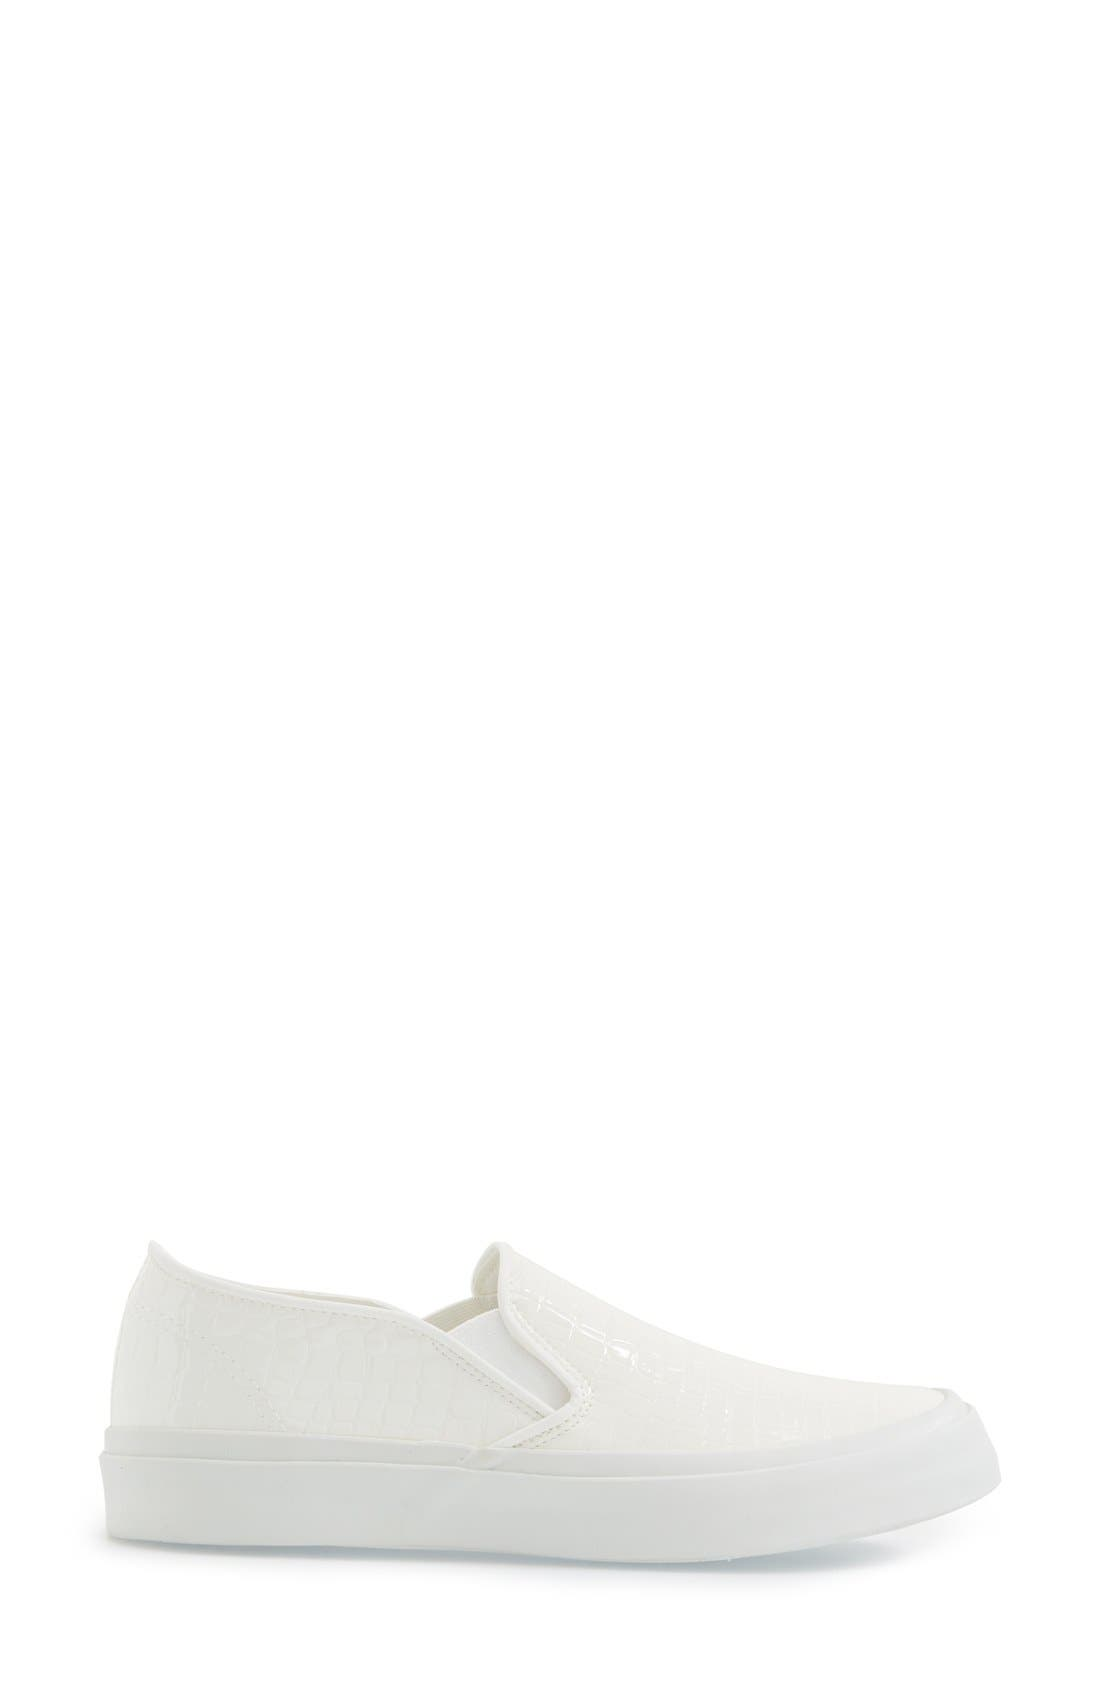 Slip-On Sneaker,                             Alternate thumbnail 4, color,                             White